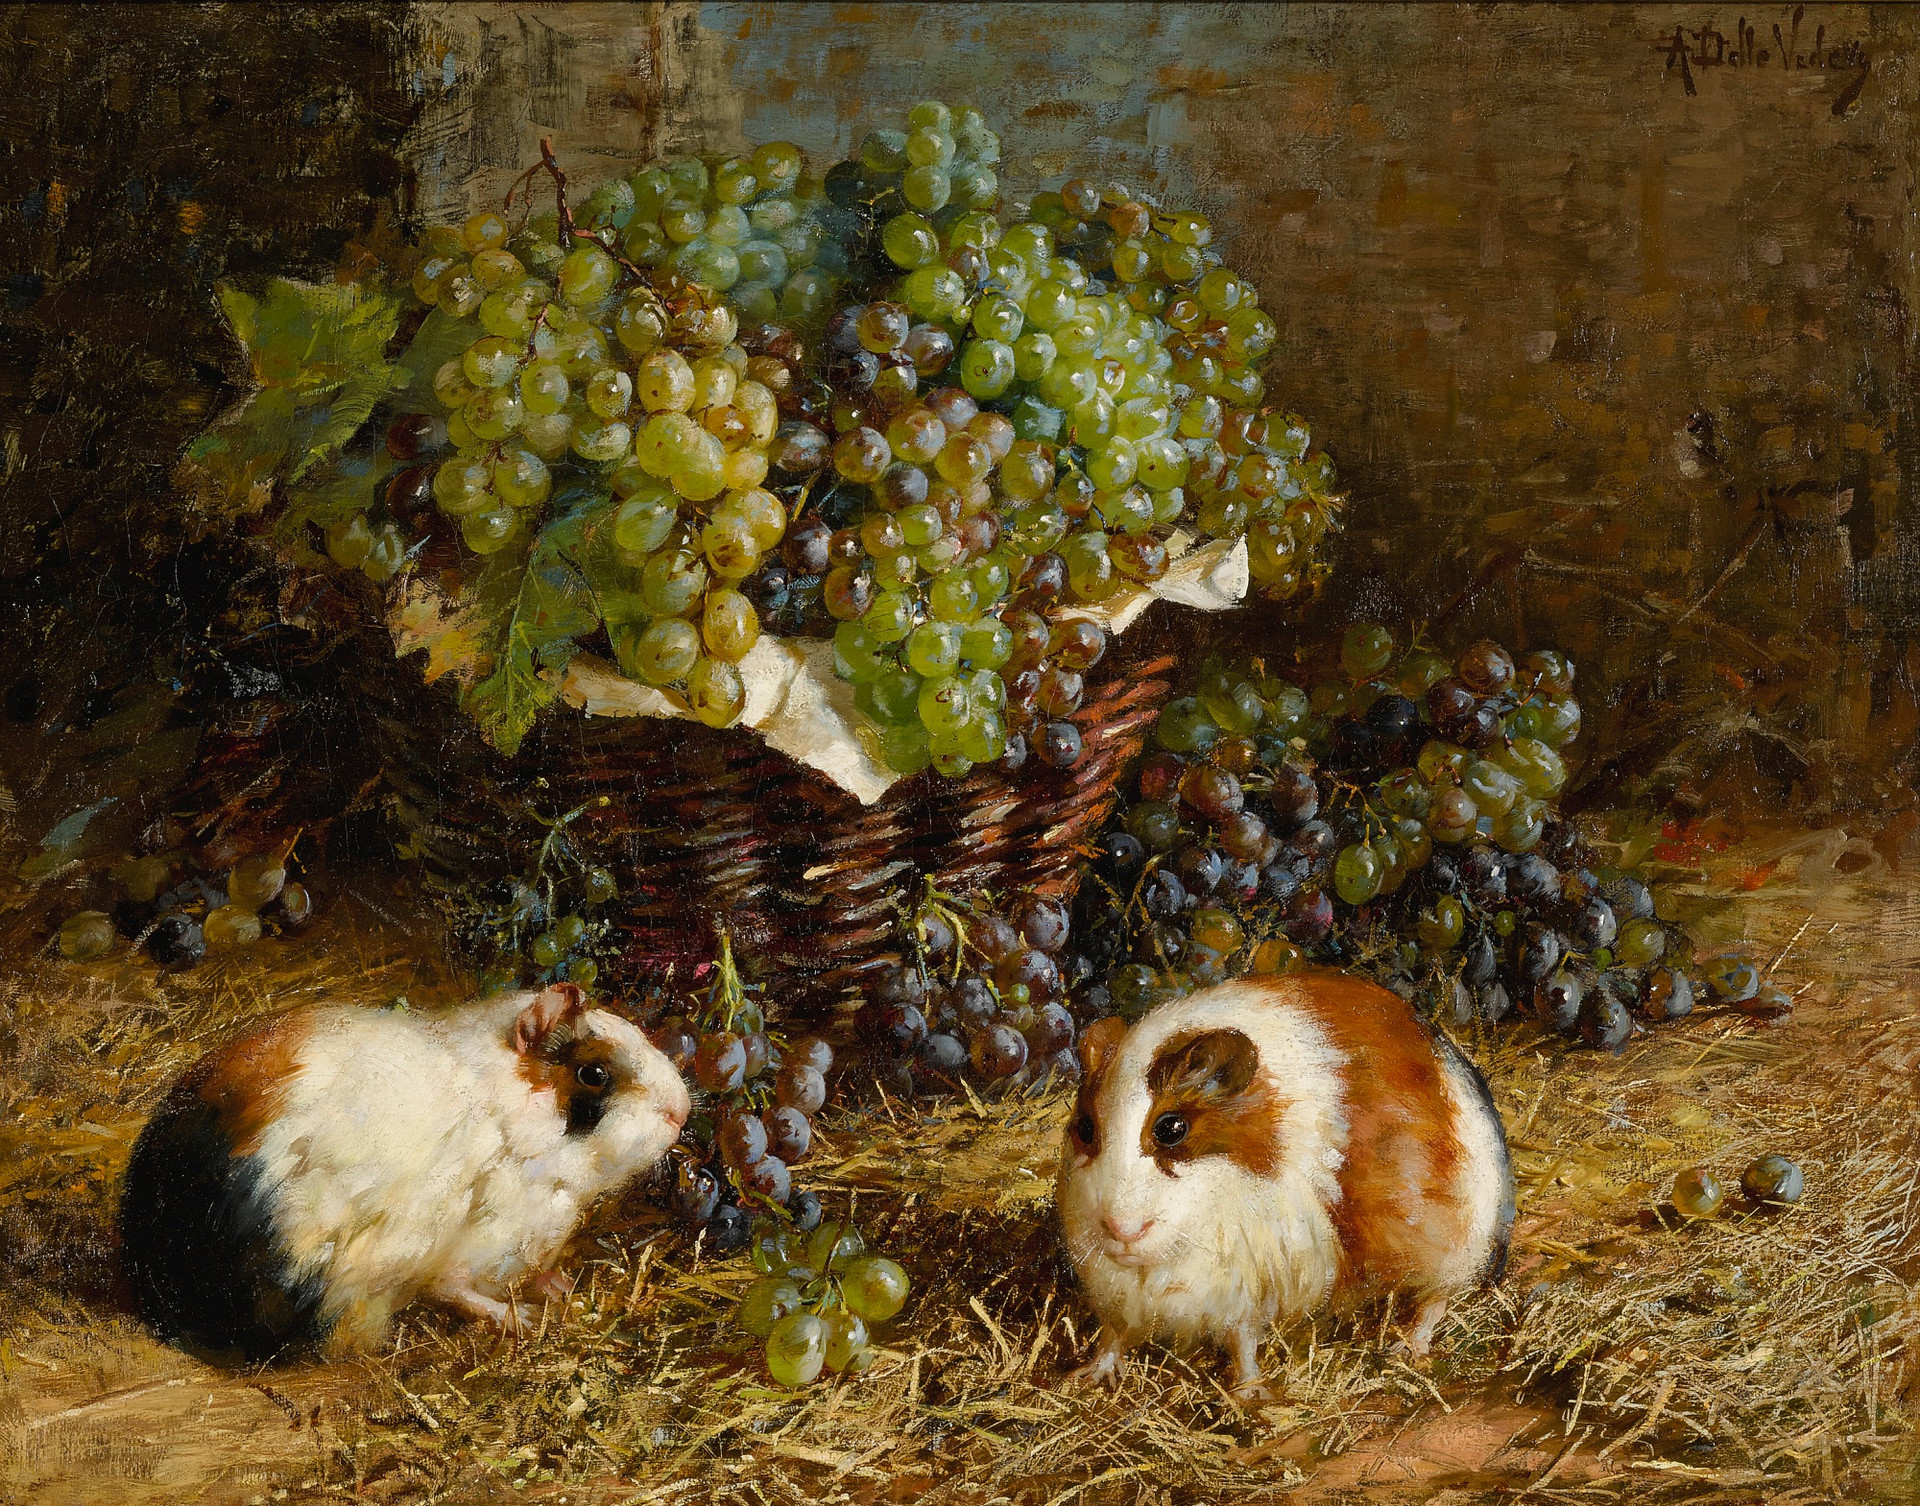 Guinea Pigs and Basket of Grapes